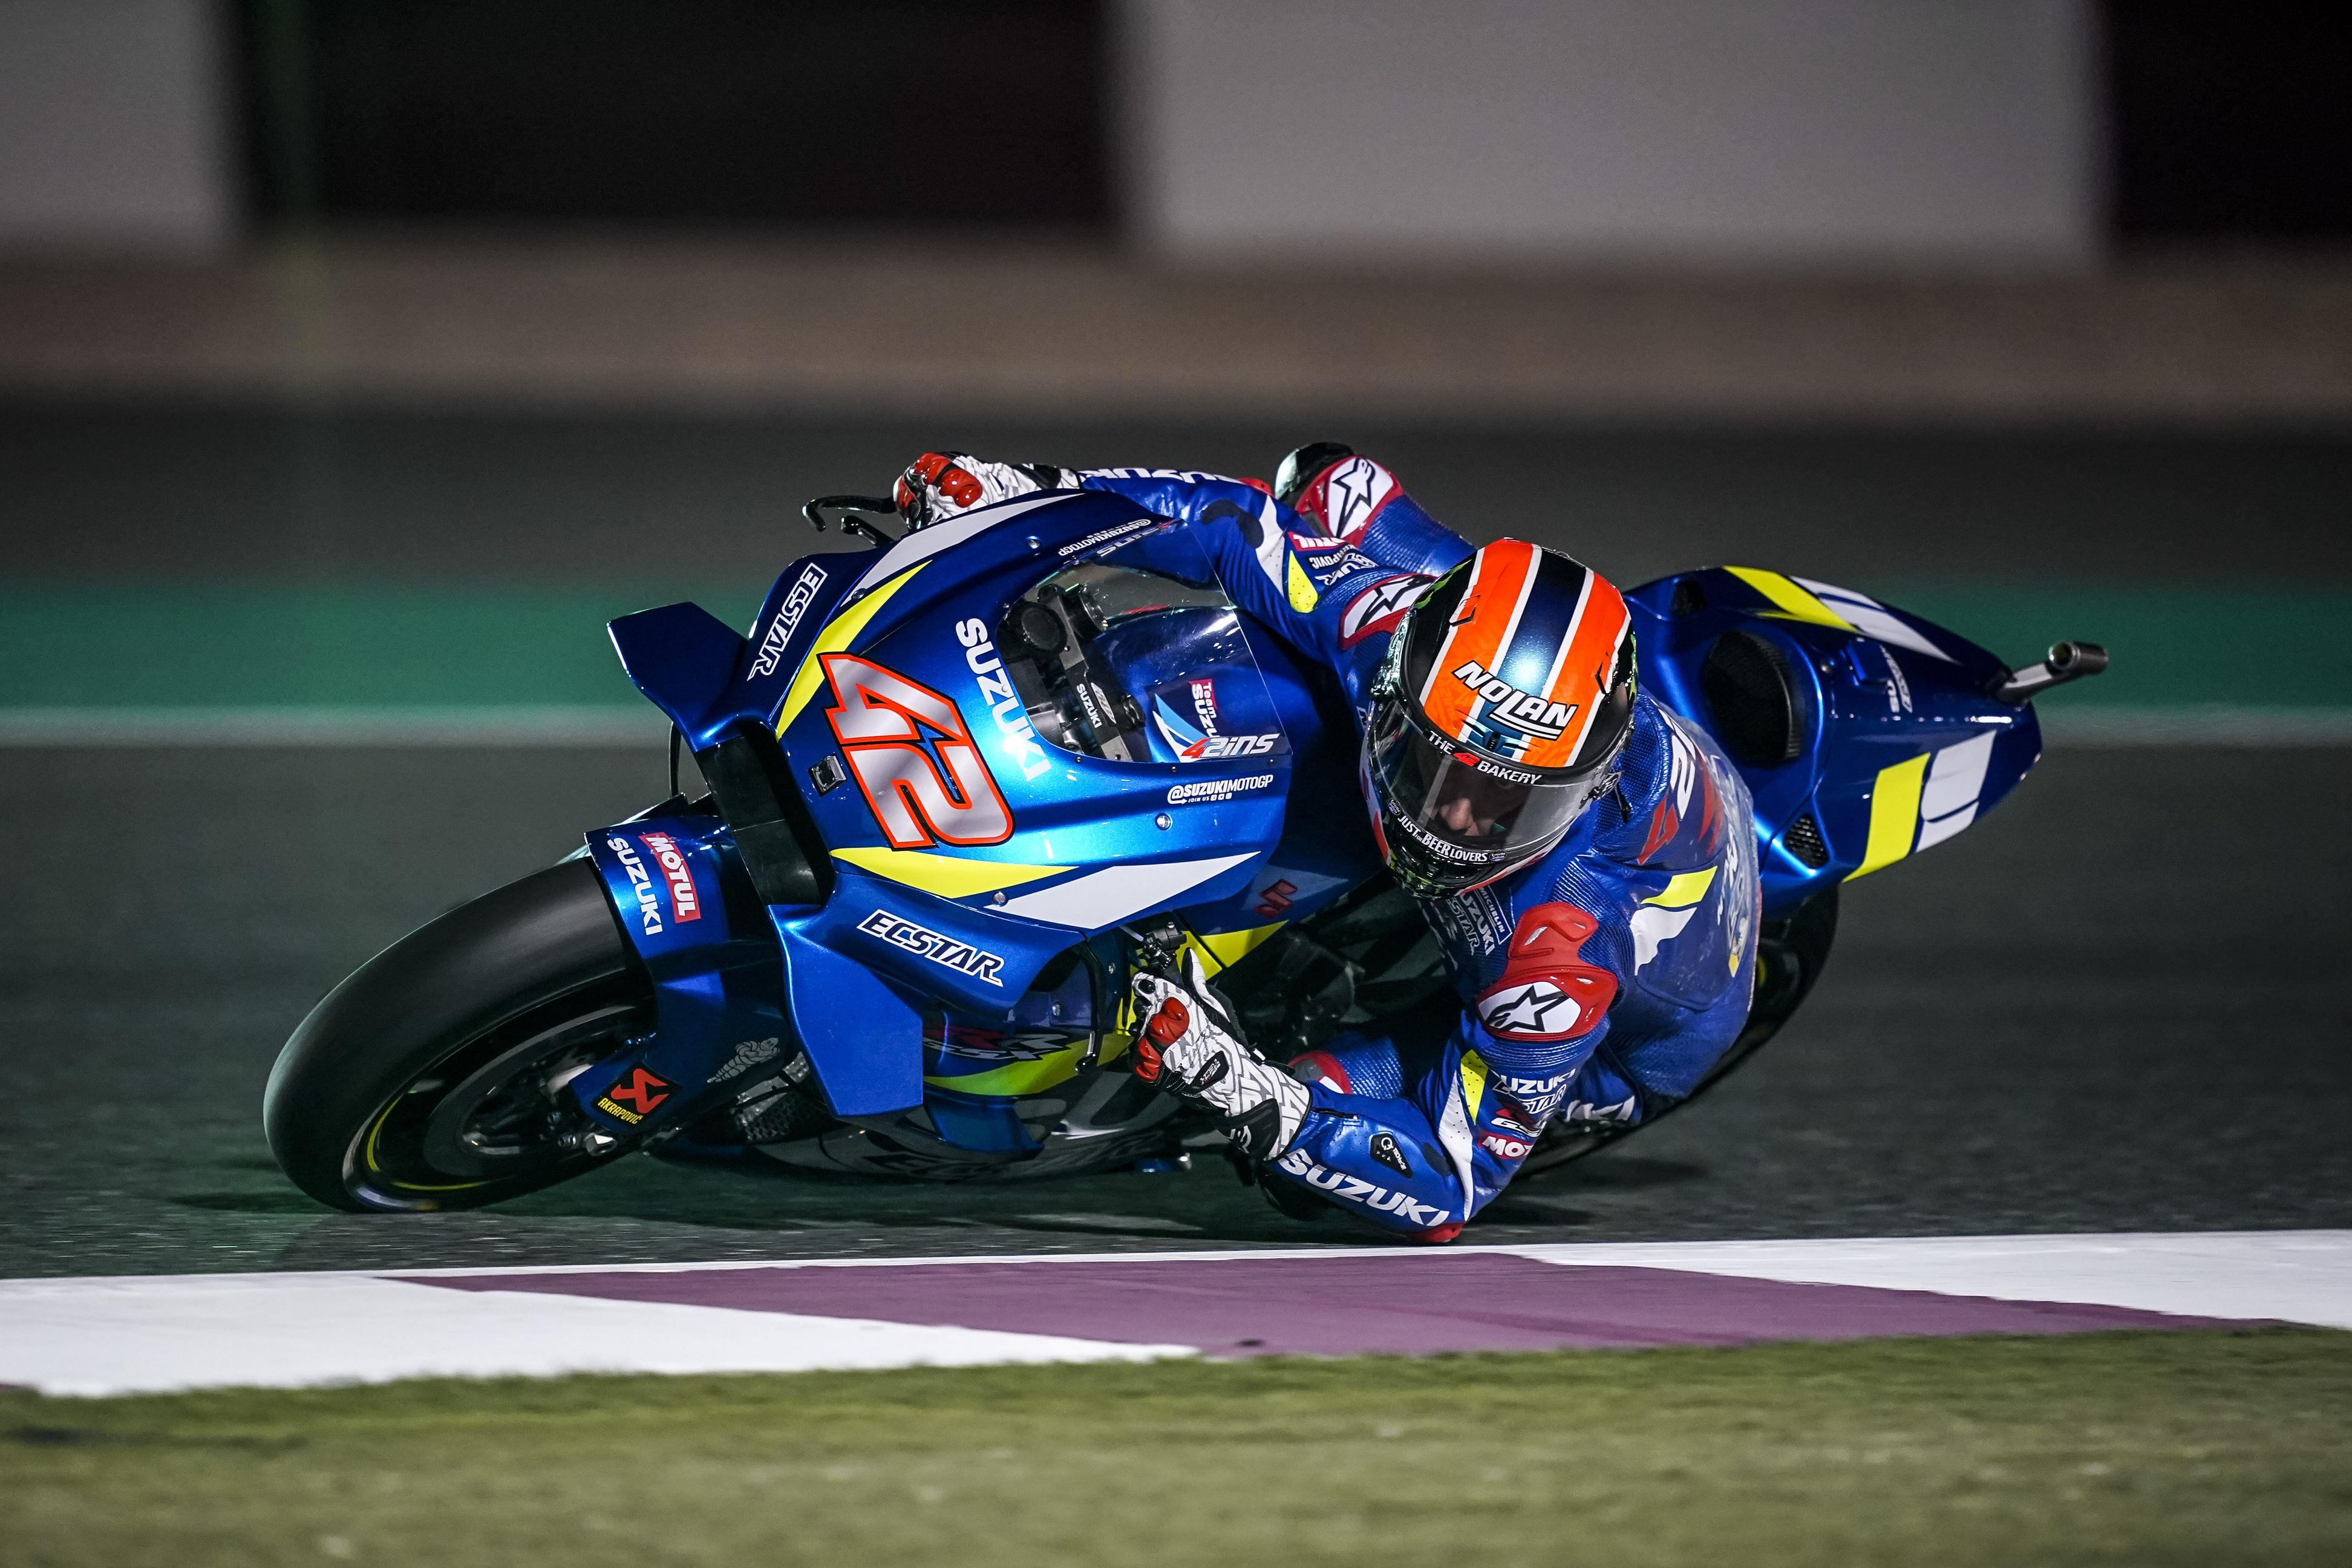 Fast Corners And Good Memories Await RINS And MIR In Argentina